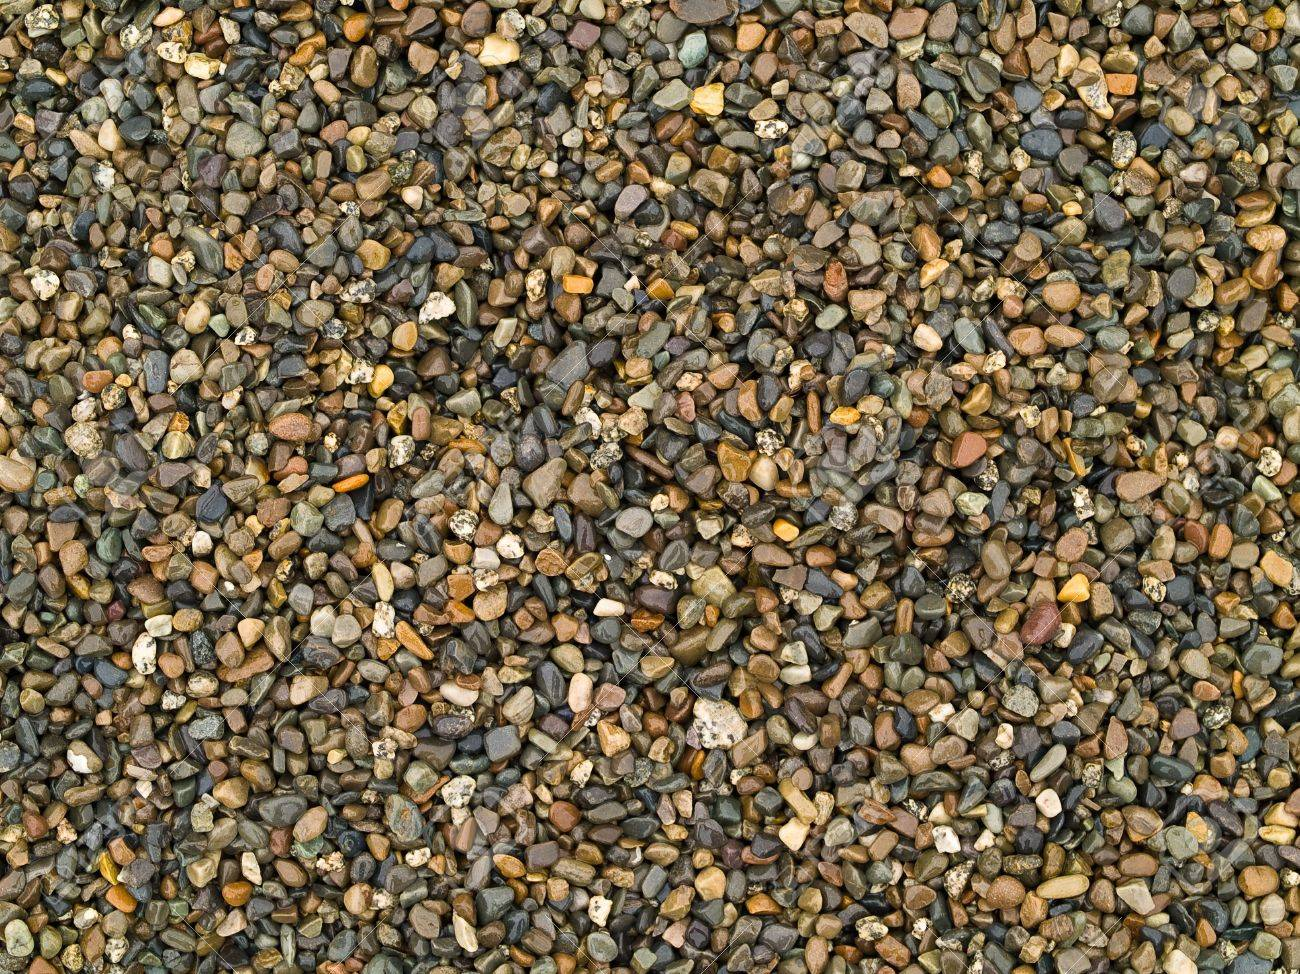 pea gravel playground stone playground pea gravel wet from recent shower stock photo 65869322 from photo picture